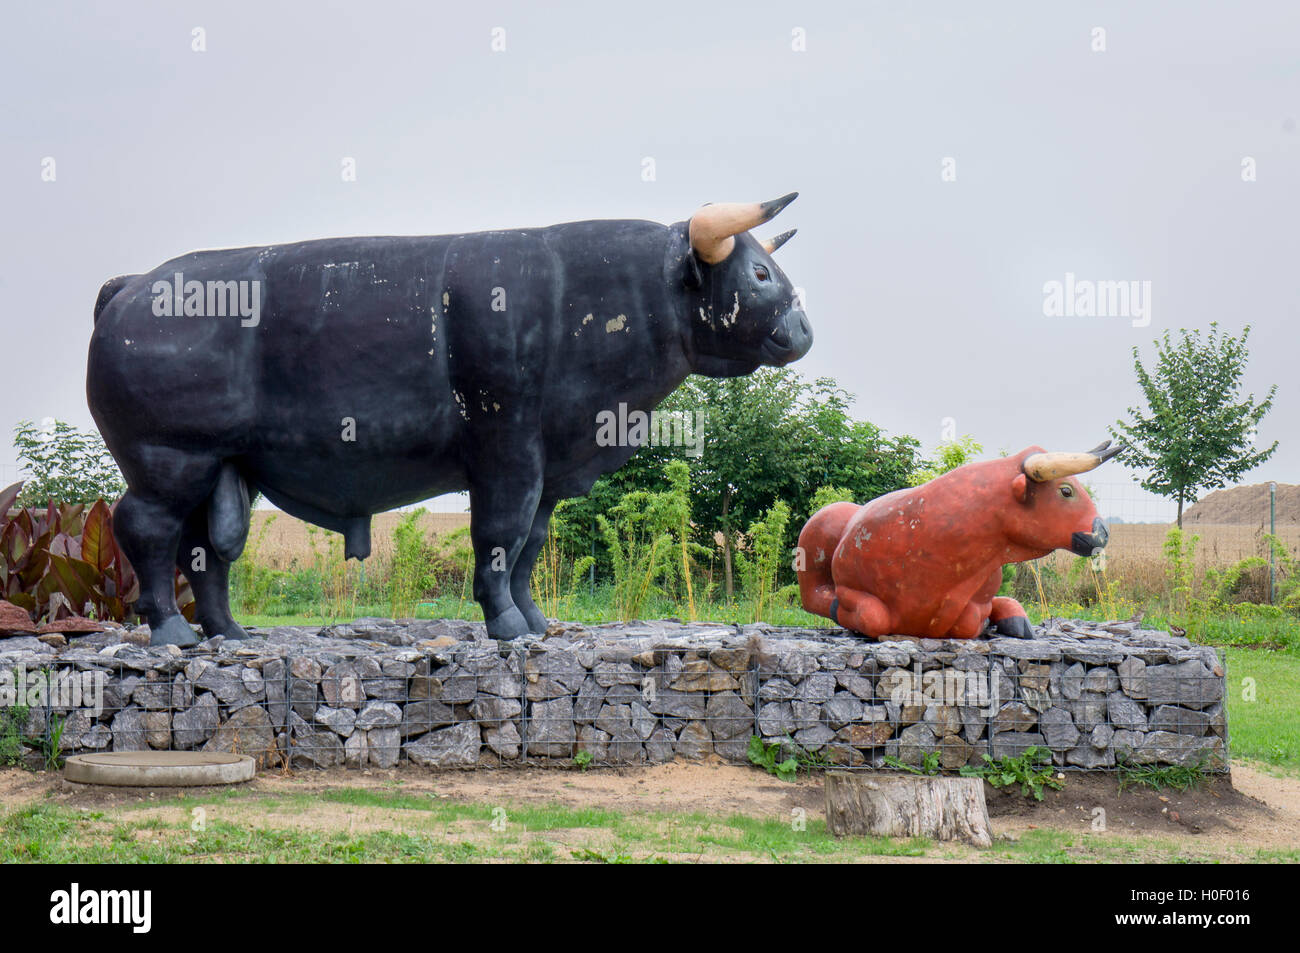 sculpture Aurochs, Bos primigenius - Stock Image